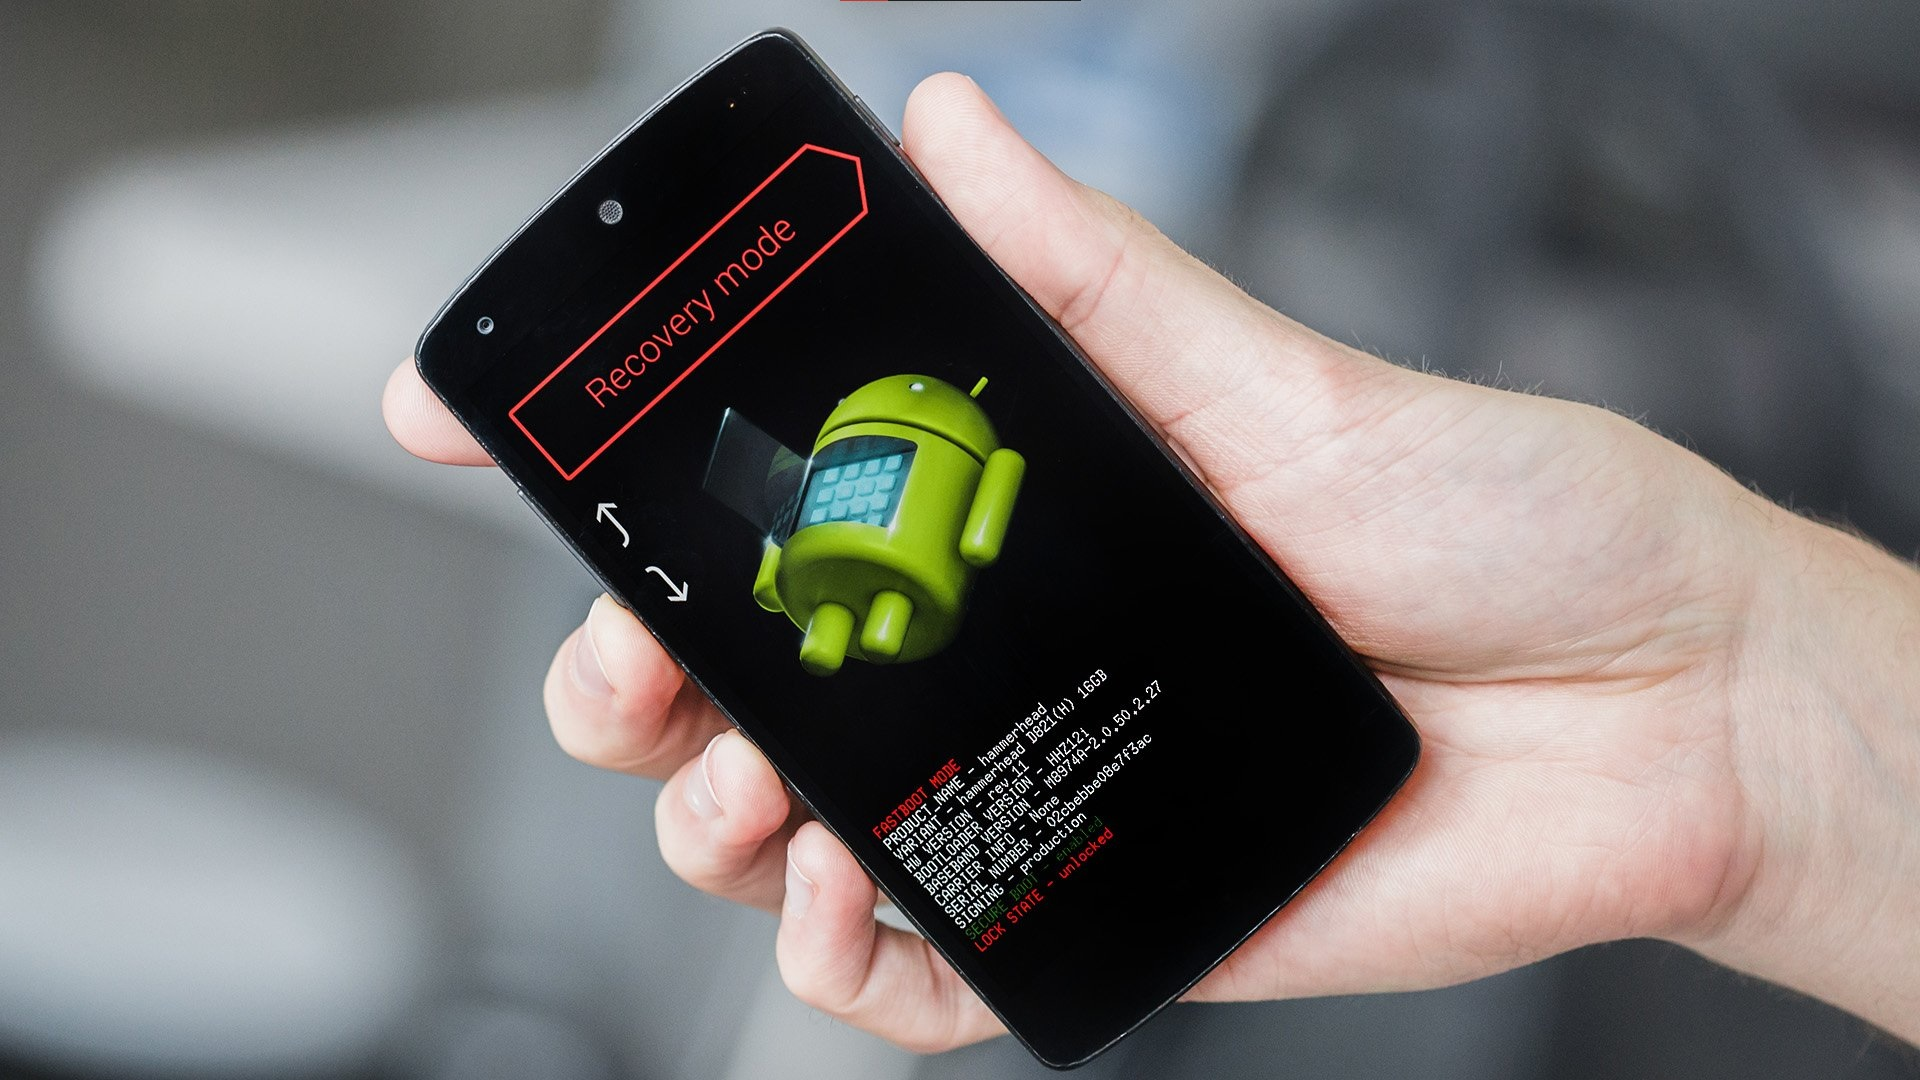 Can we install custom ROM without rooting